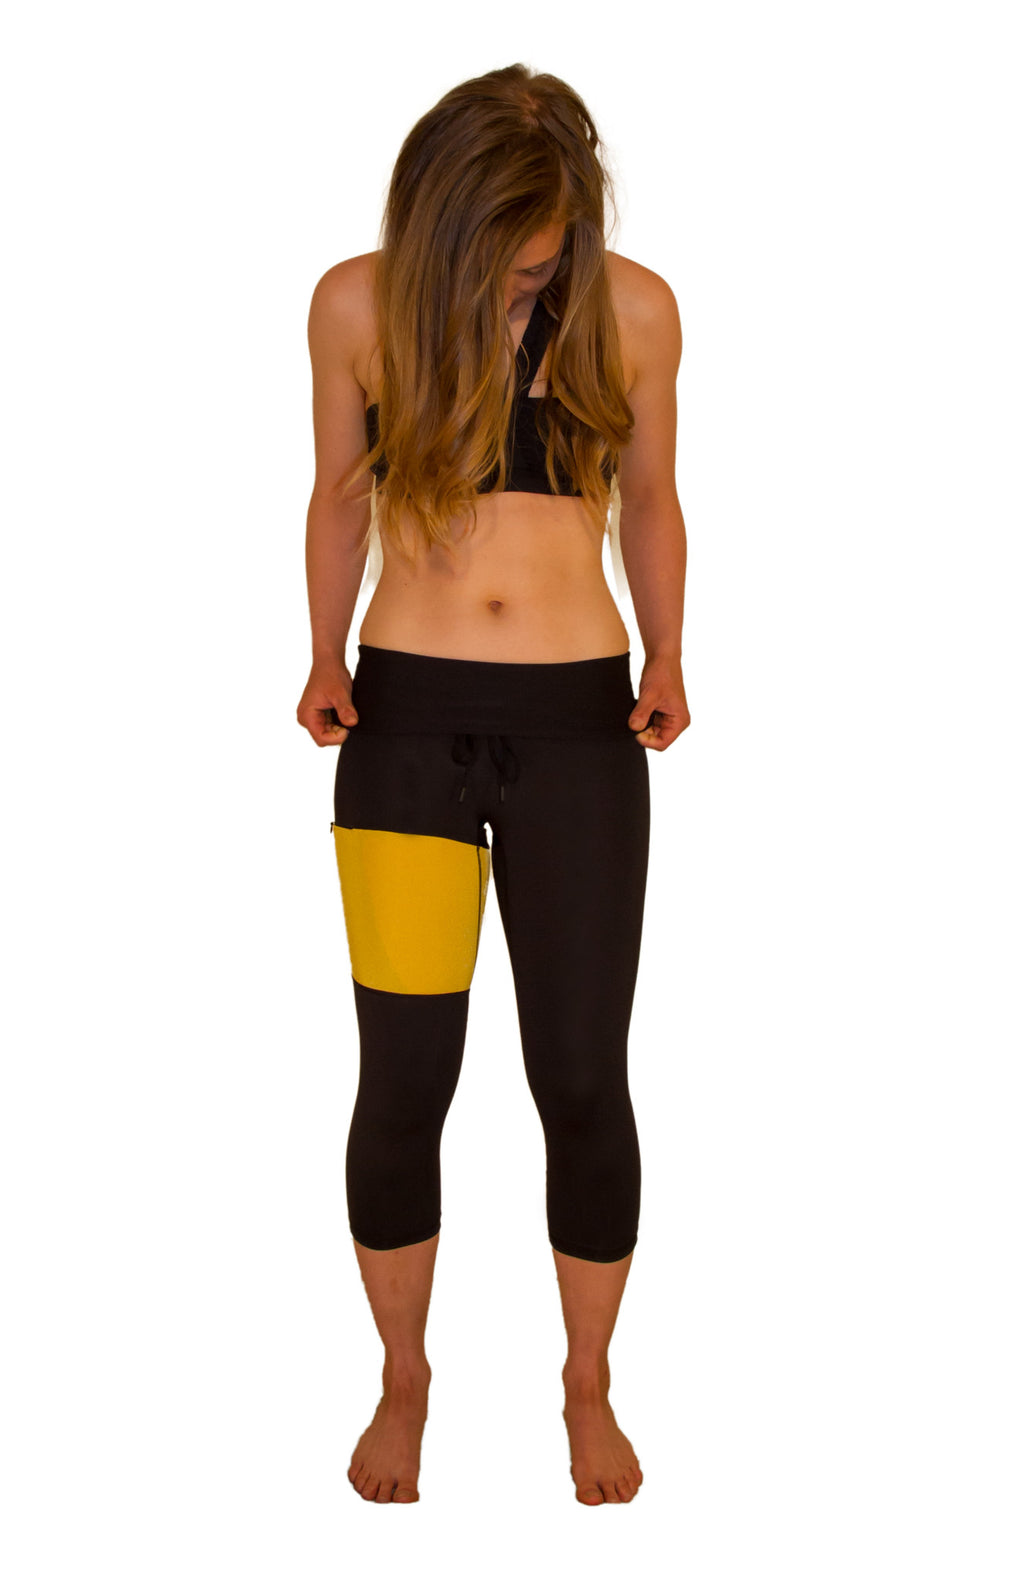 Golden Glam Fitness Capri - XS only